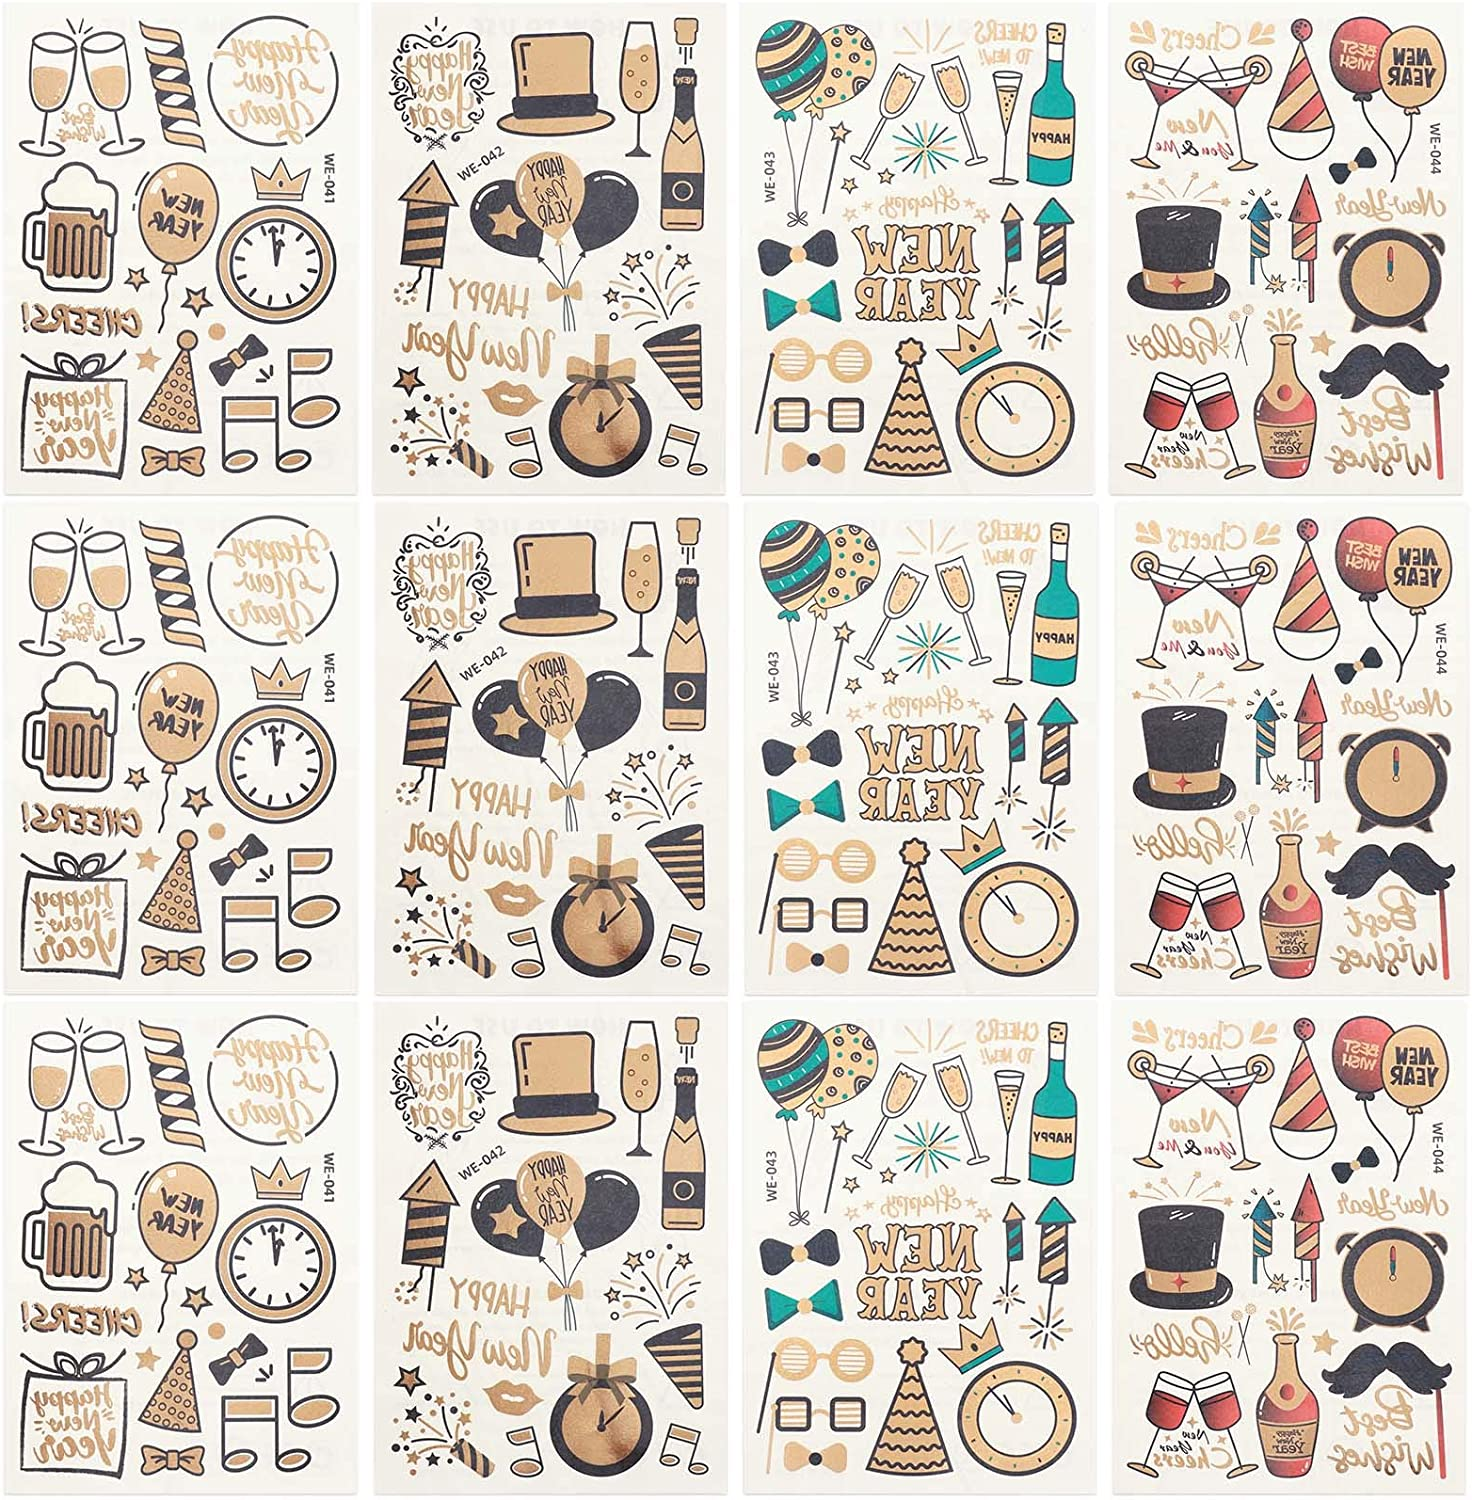 Ujuuu 48 Gold New Years Eve Tattoos 12 Sheets for Kids Adults Face Hands Tattoos NYE Party Favors Supplies Temporary Tattoos Happy New Year, Cheers